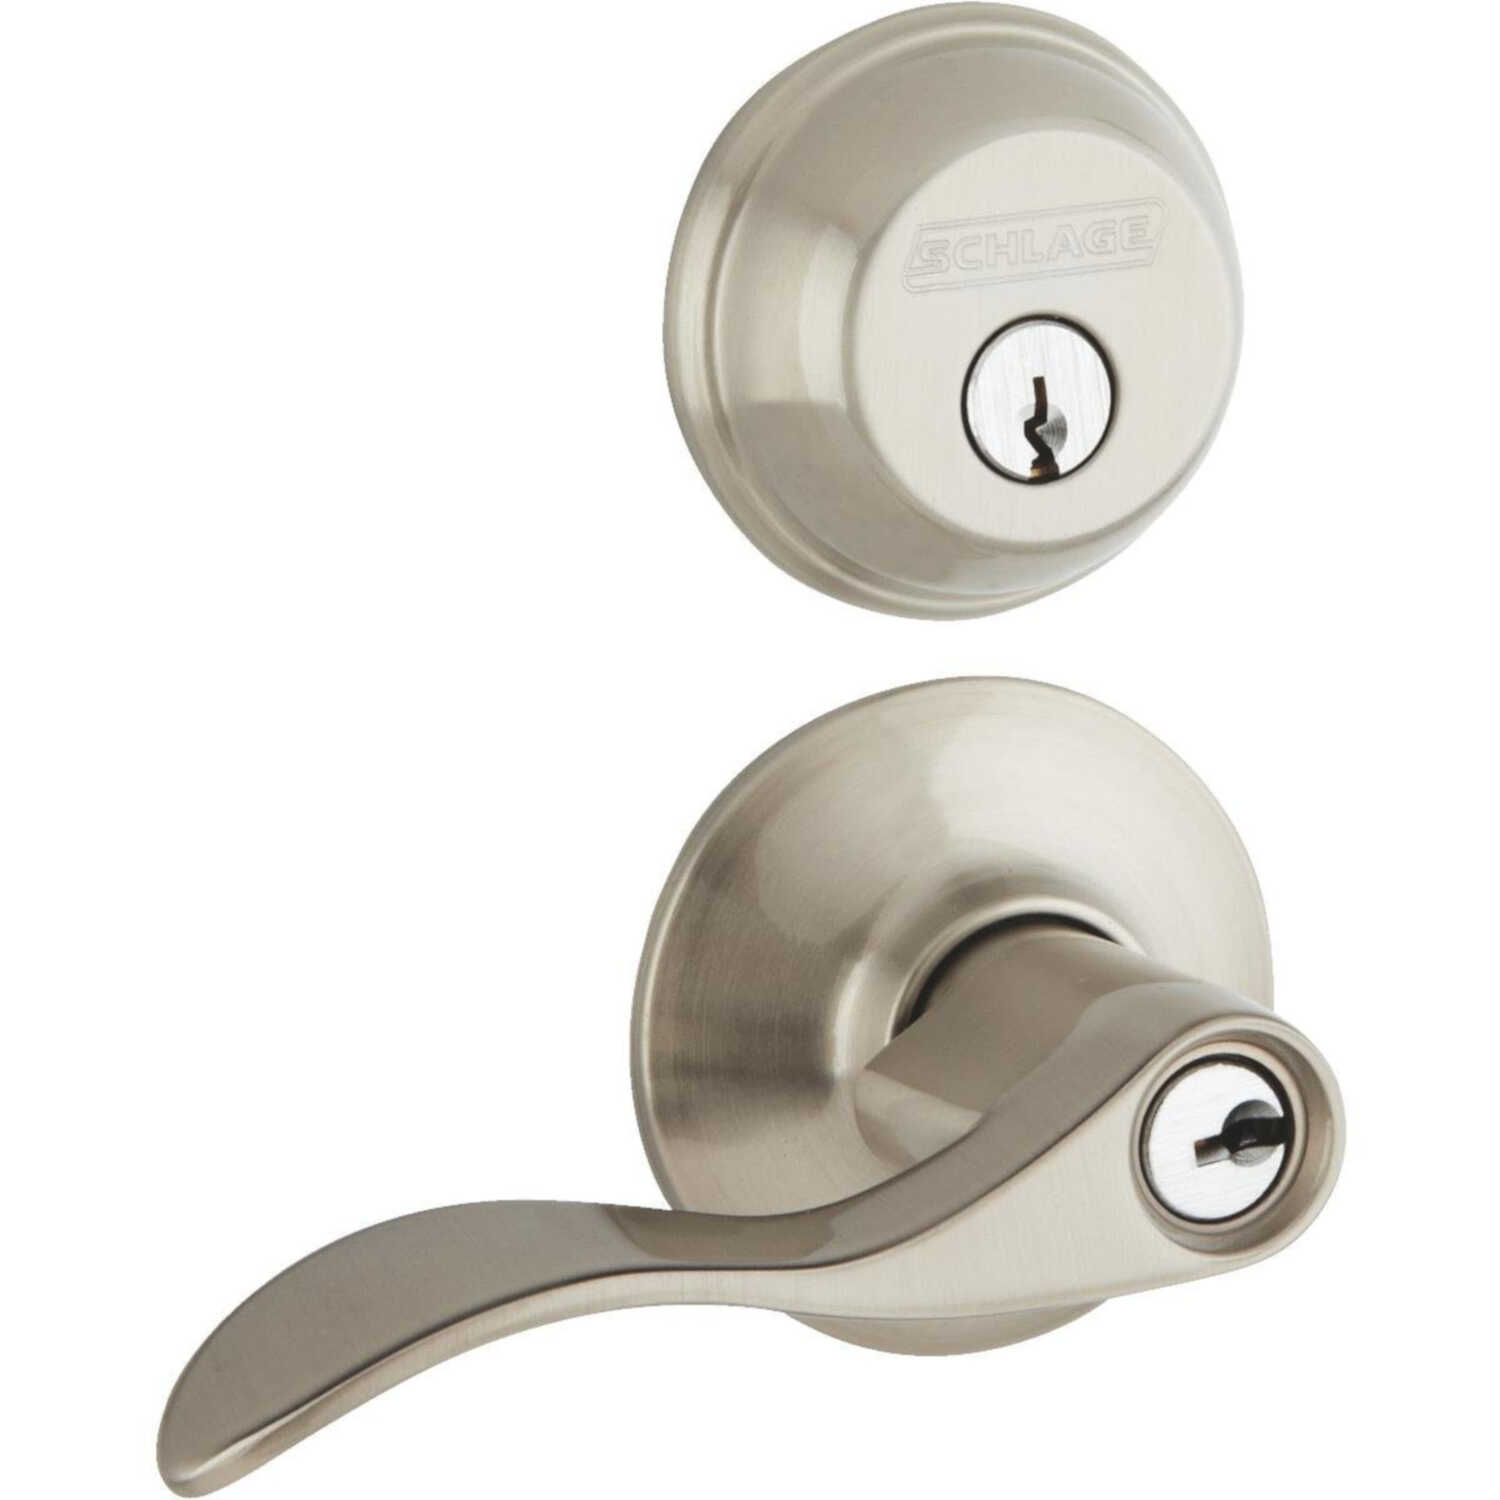 Schlage  Accent  Satin Nickel  Steel  Lever and Single Cylinder Deadbolt  1-3/4 in. ANSI Grade 2